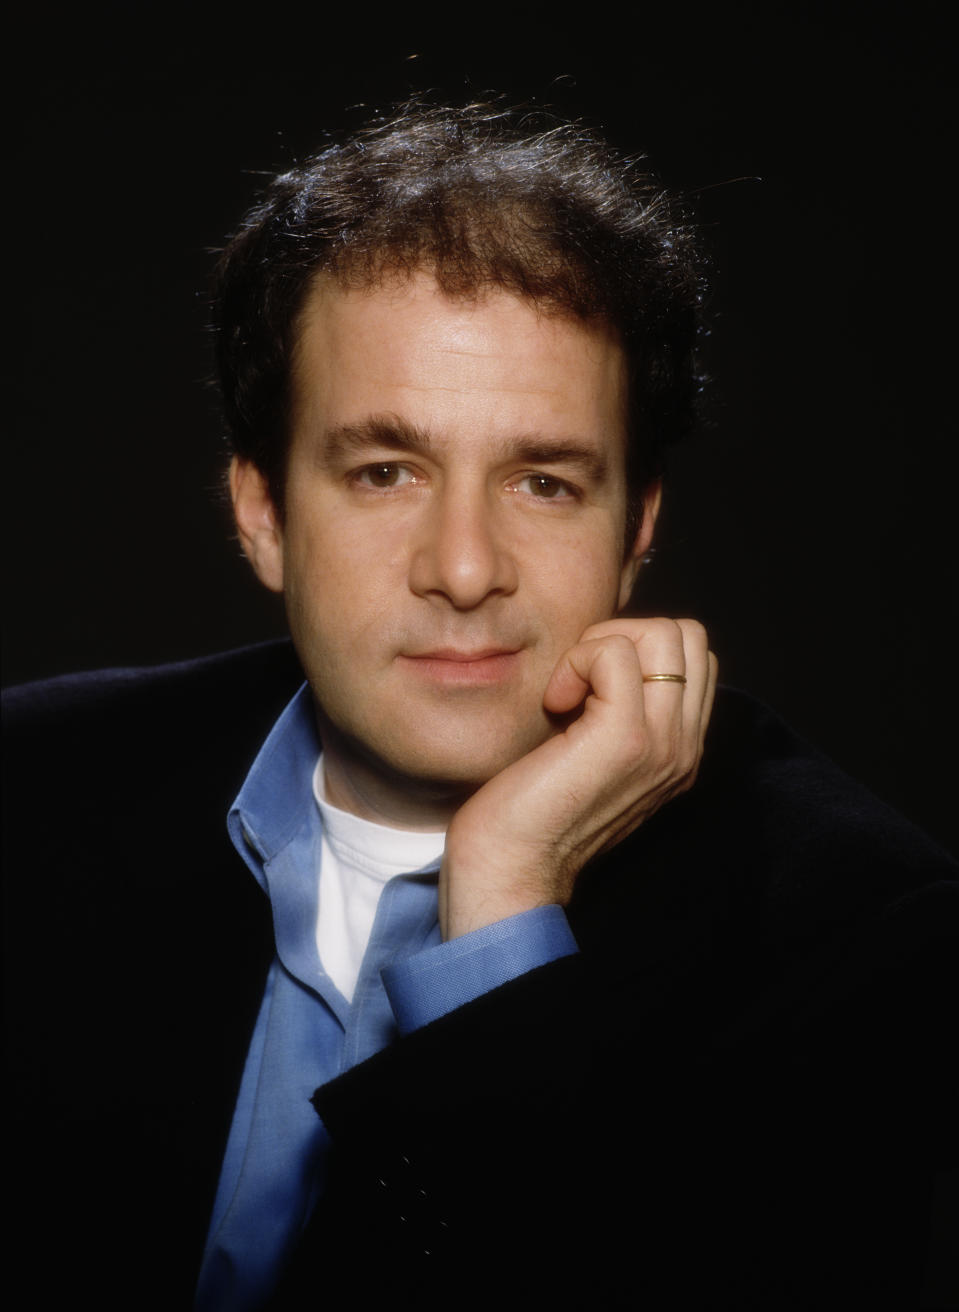 American writer Bruce Feirstein, screenwriter and co-writer on the James Bond films 'The World Is Not Enough', 'Tomorrow Never Dies' and 'GoldenEye', circa 1997. (Photo by Keith Hamshere/Getty Images)